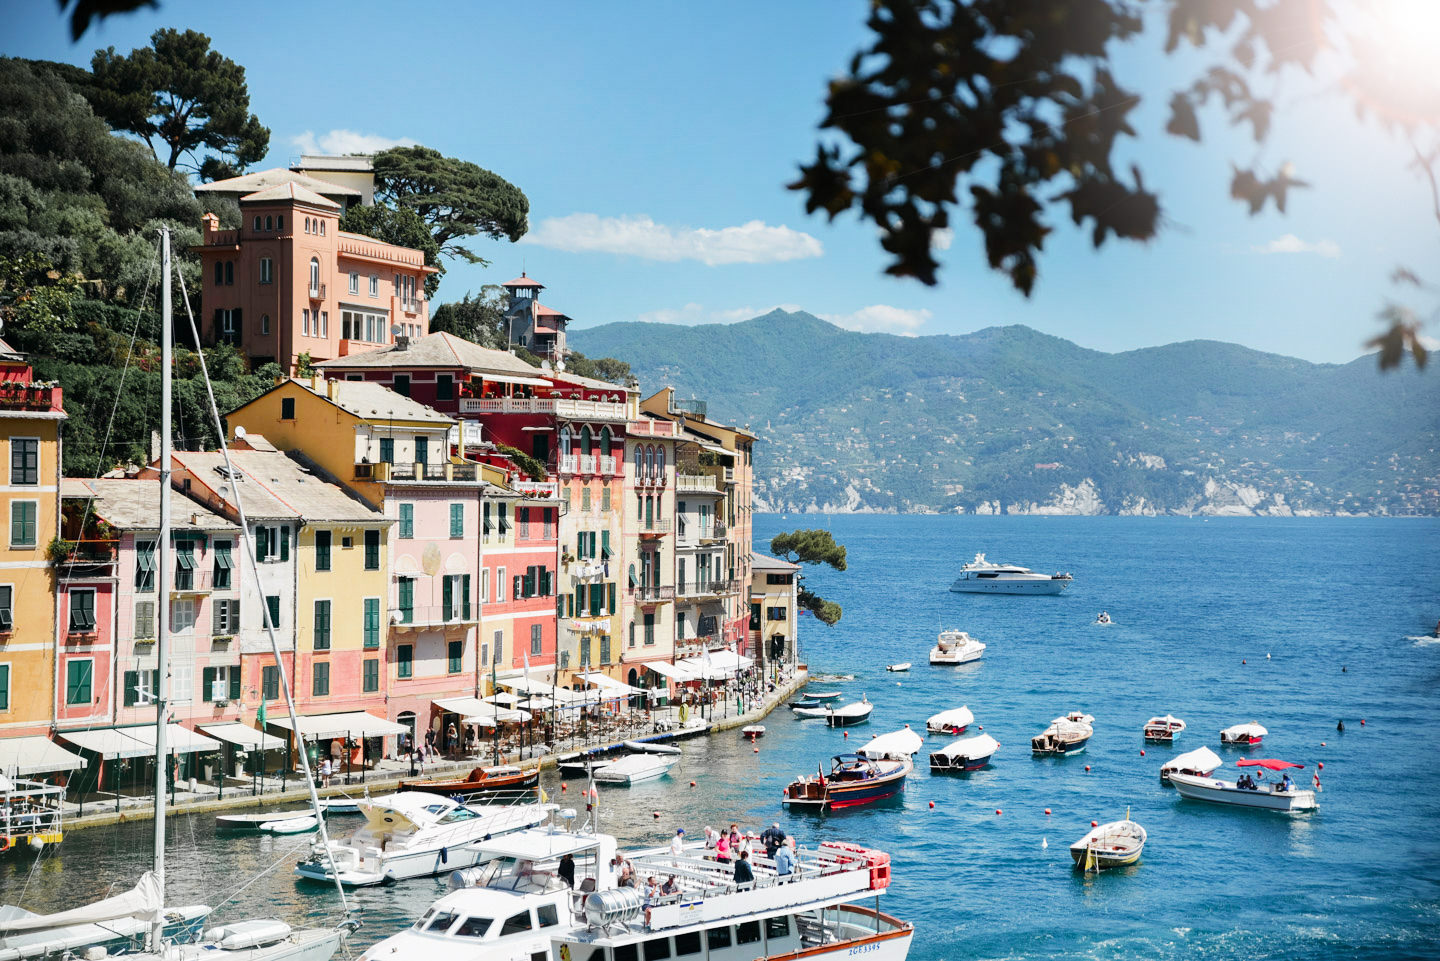 Blog-Mode-And-The-City-Lifestyle-Italie-Portofino-Belmond-Hotel-10